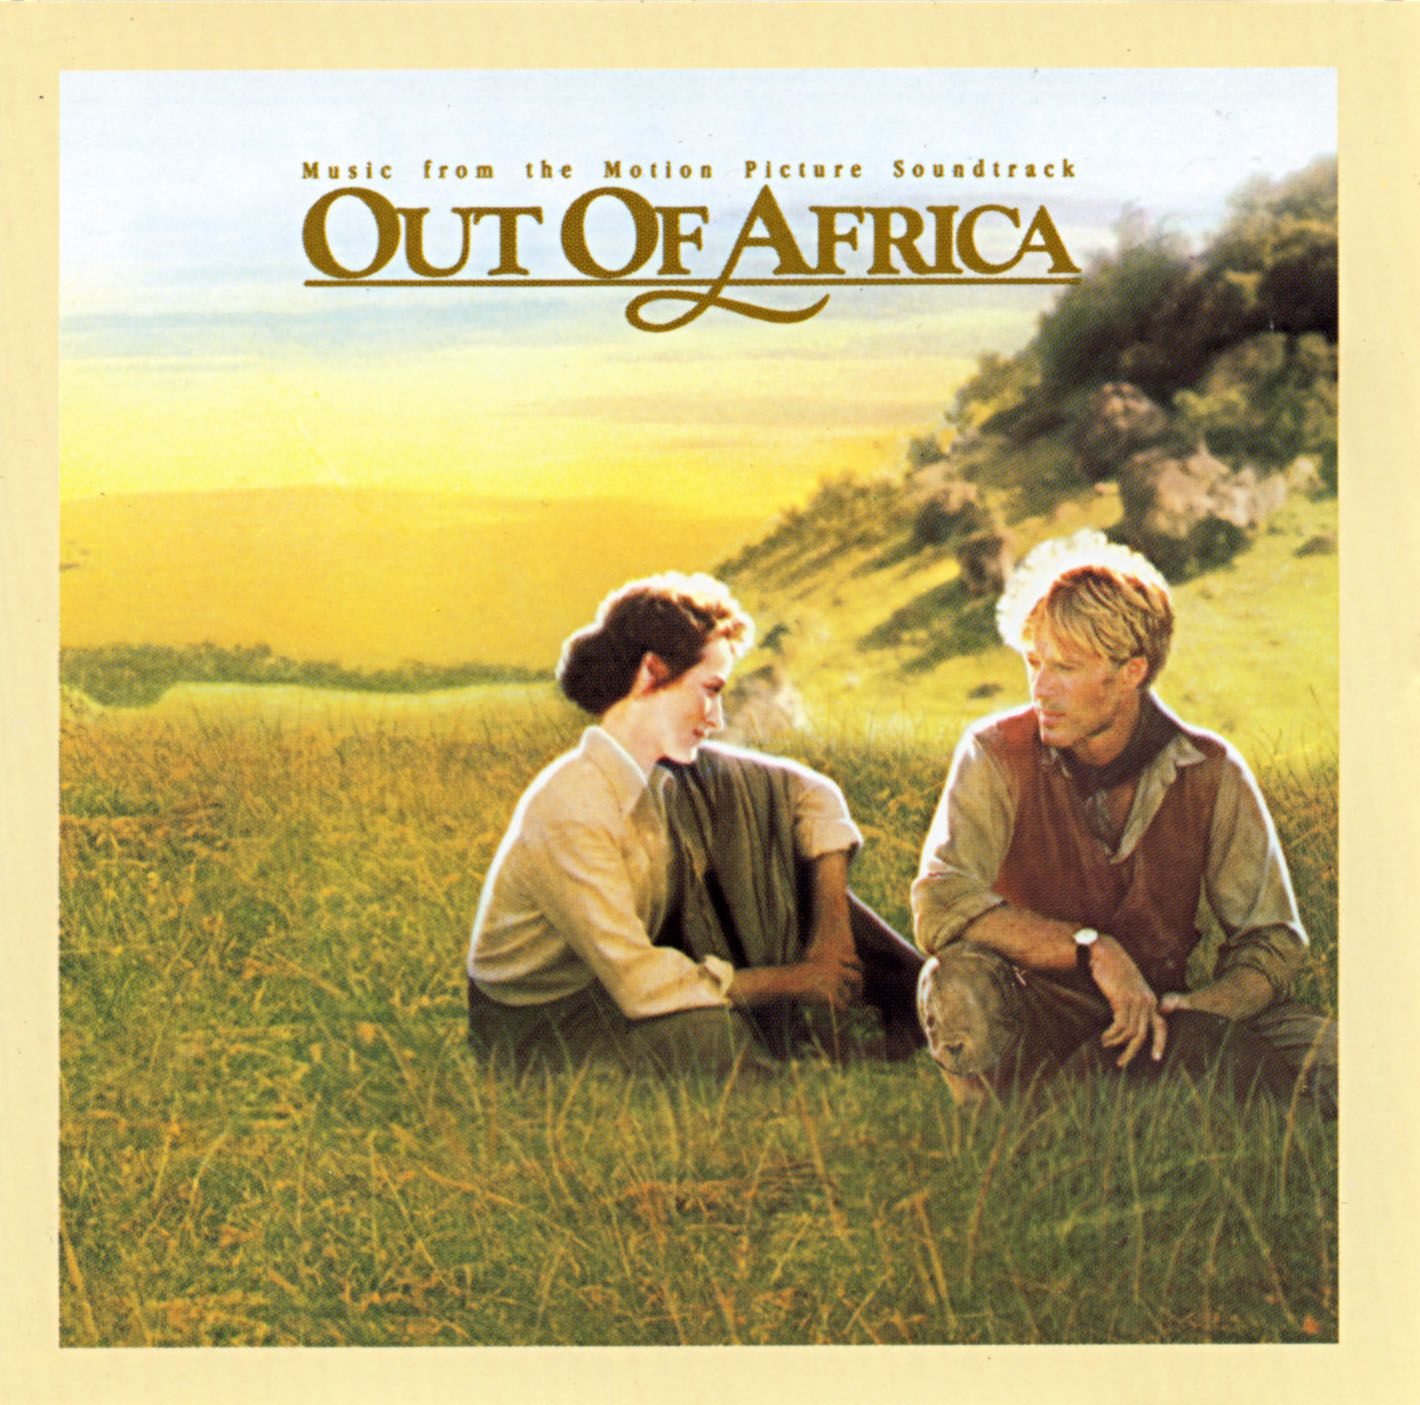 out of africa ost john barry senscritique. Black Bedroom Furniture Sets. Home Design Ideas